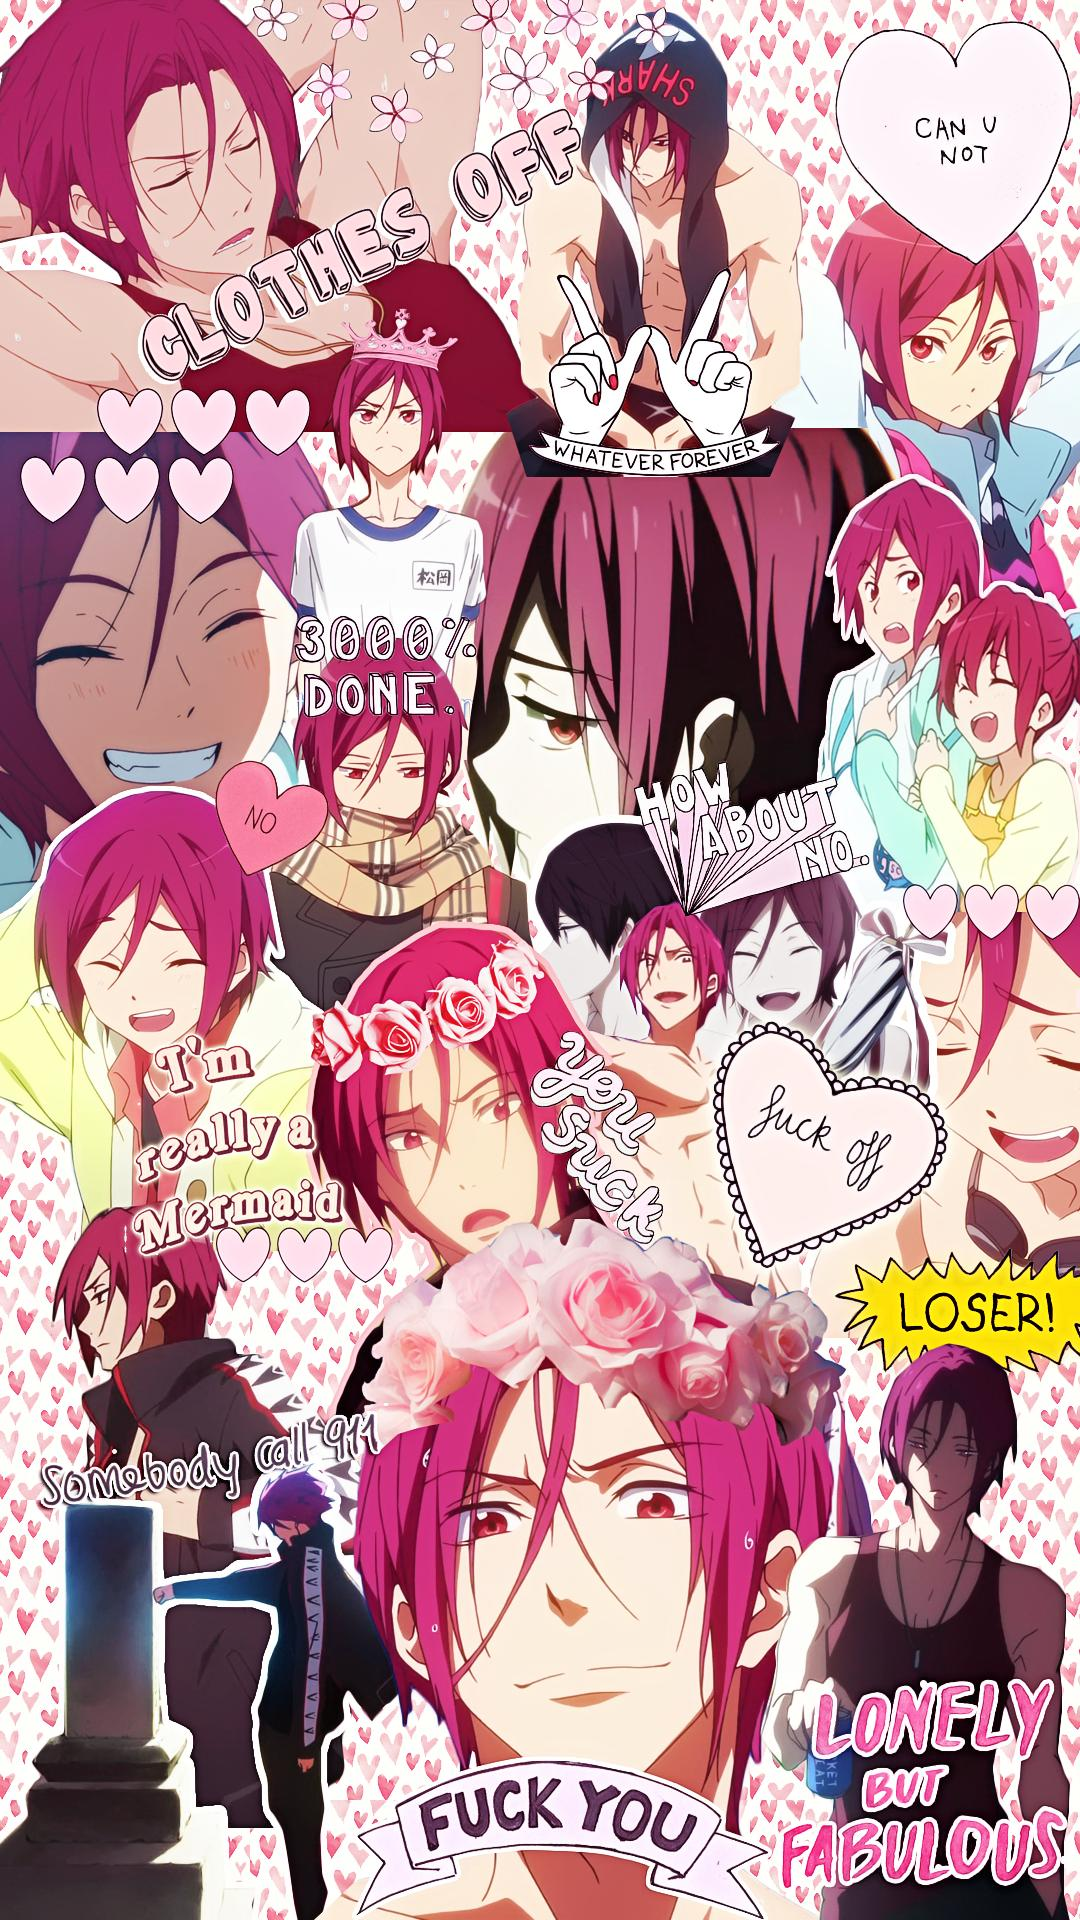 Rin Matsuoka On Twitter Rinmatsuoka Sexy Free Anime Shark Collage Https T Co 59wzzflfec A wide variety of rin matsuoka cosplay options are available to you, such as supply type, product type, and gender. rin matsuoka on twitter rinmatsuoka